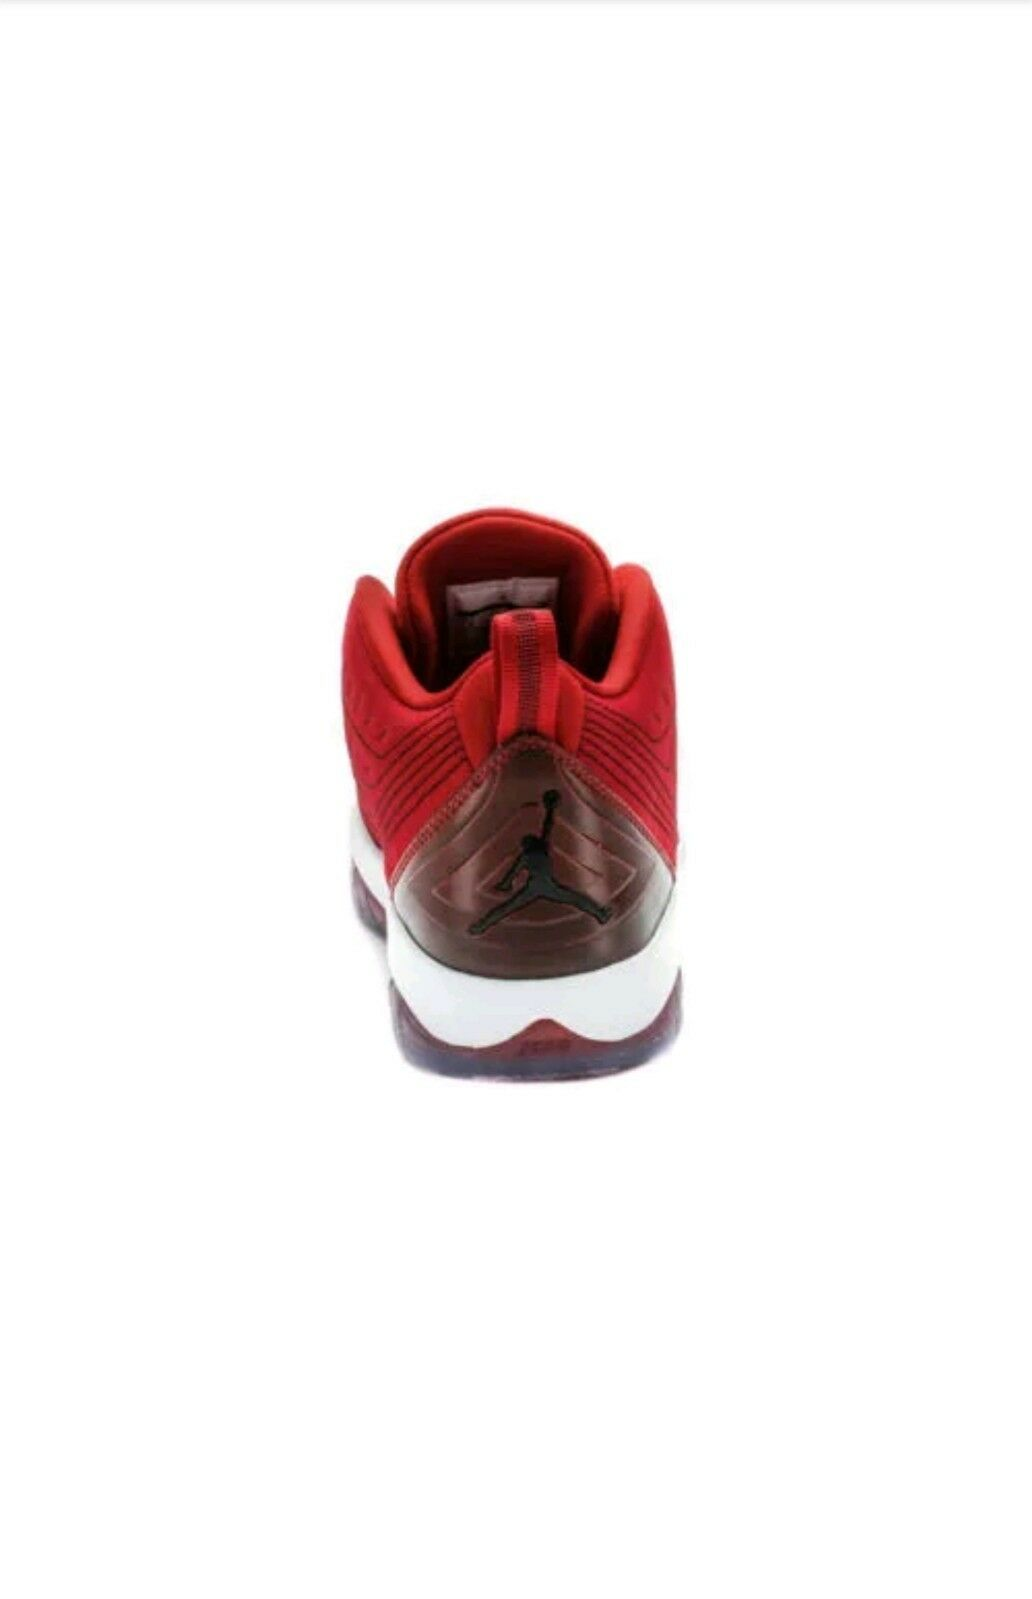 Nike Nike Nike Jordan Velocity Men's 11 Basketball shoes Gym Red Black White 688975-601 NIB 39aa61